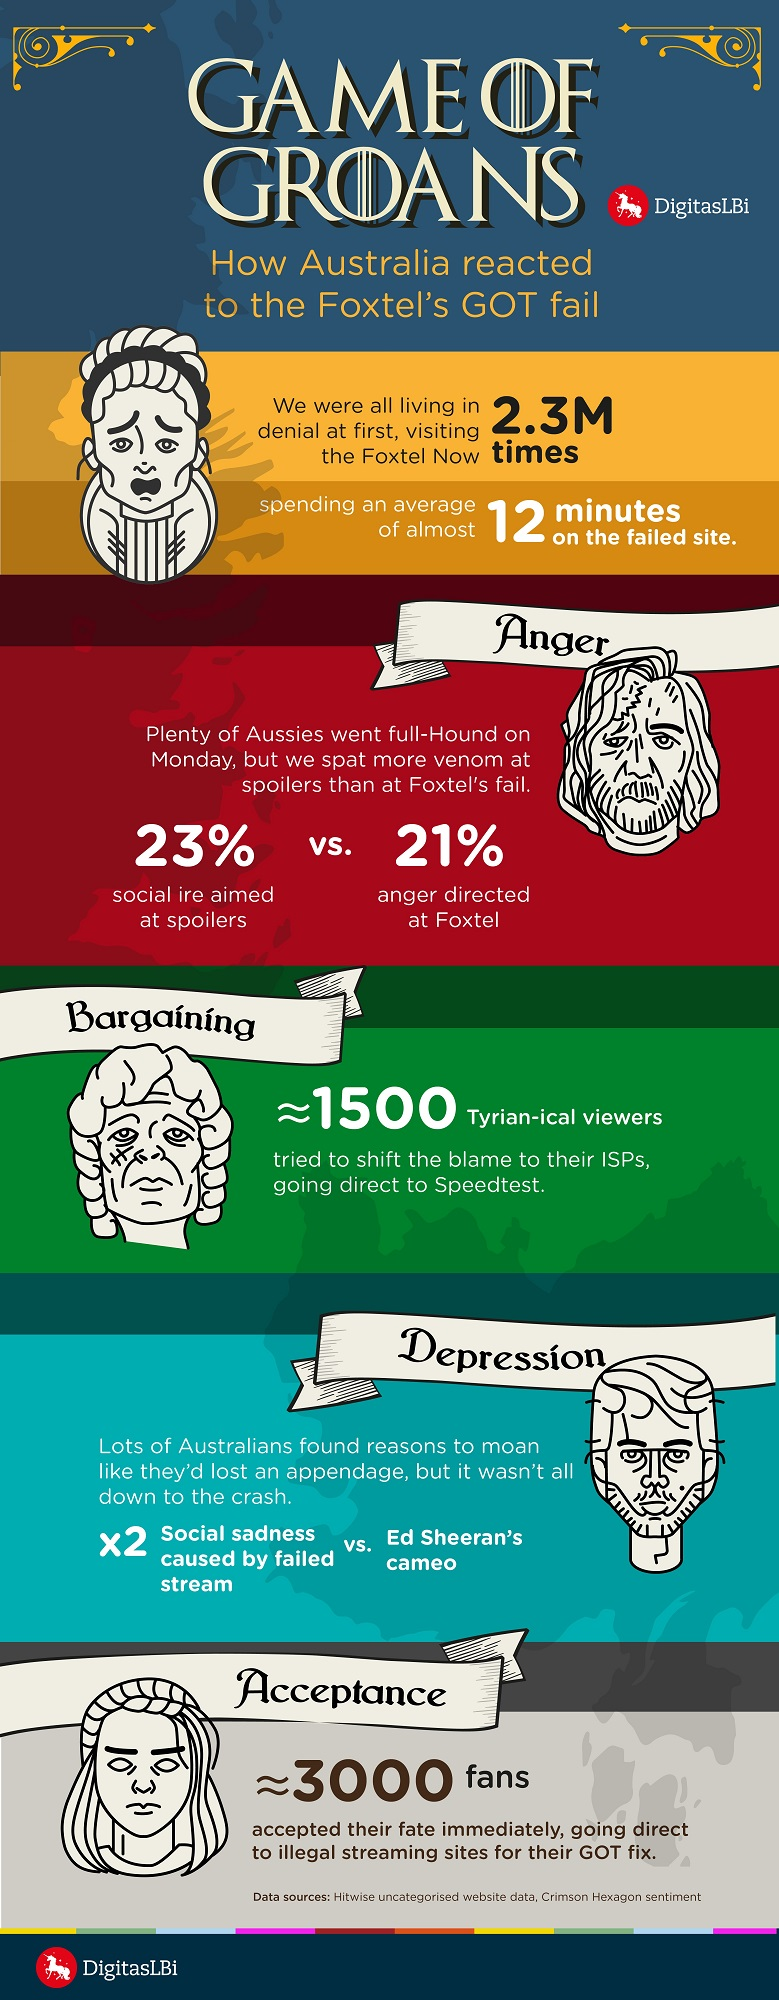 Game of Thrones-Foxtel infographic (DigitasLBi)